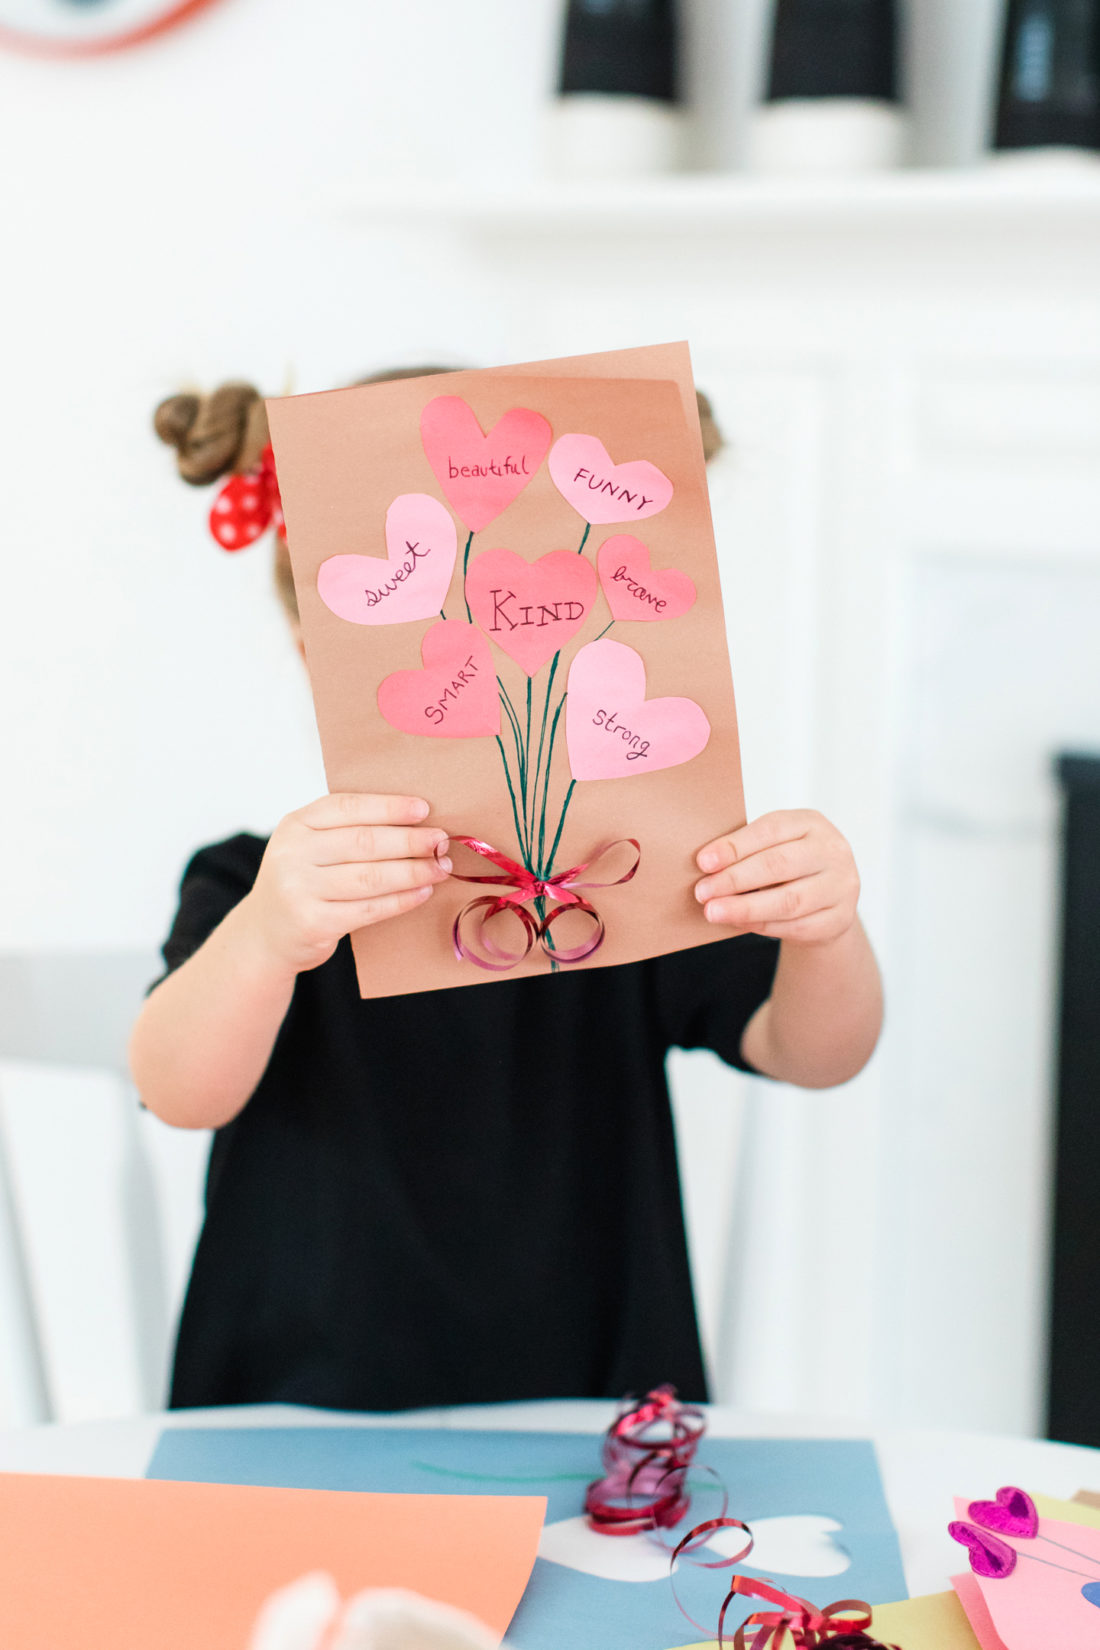 Marlowe Martino shares a homemade Valentine's Day card featuring a cutout heart bouquet on the front